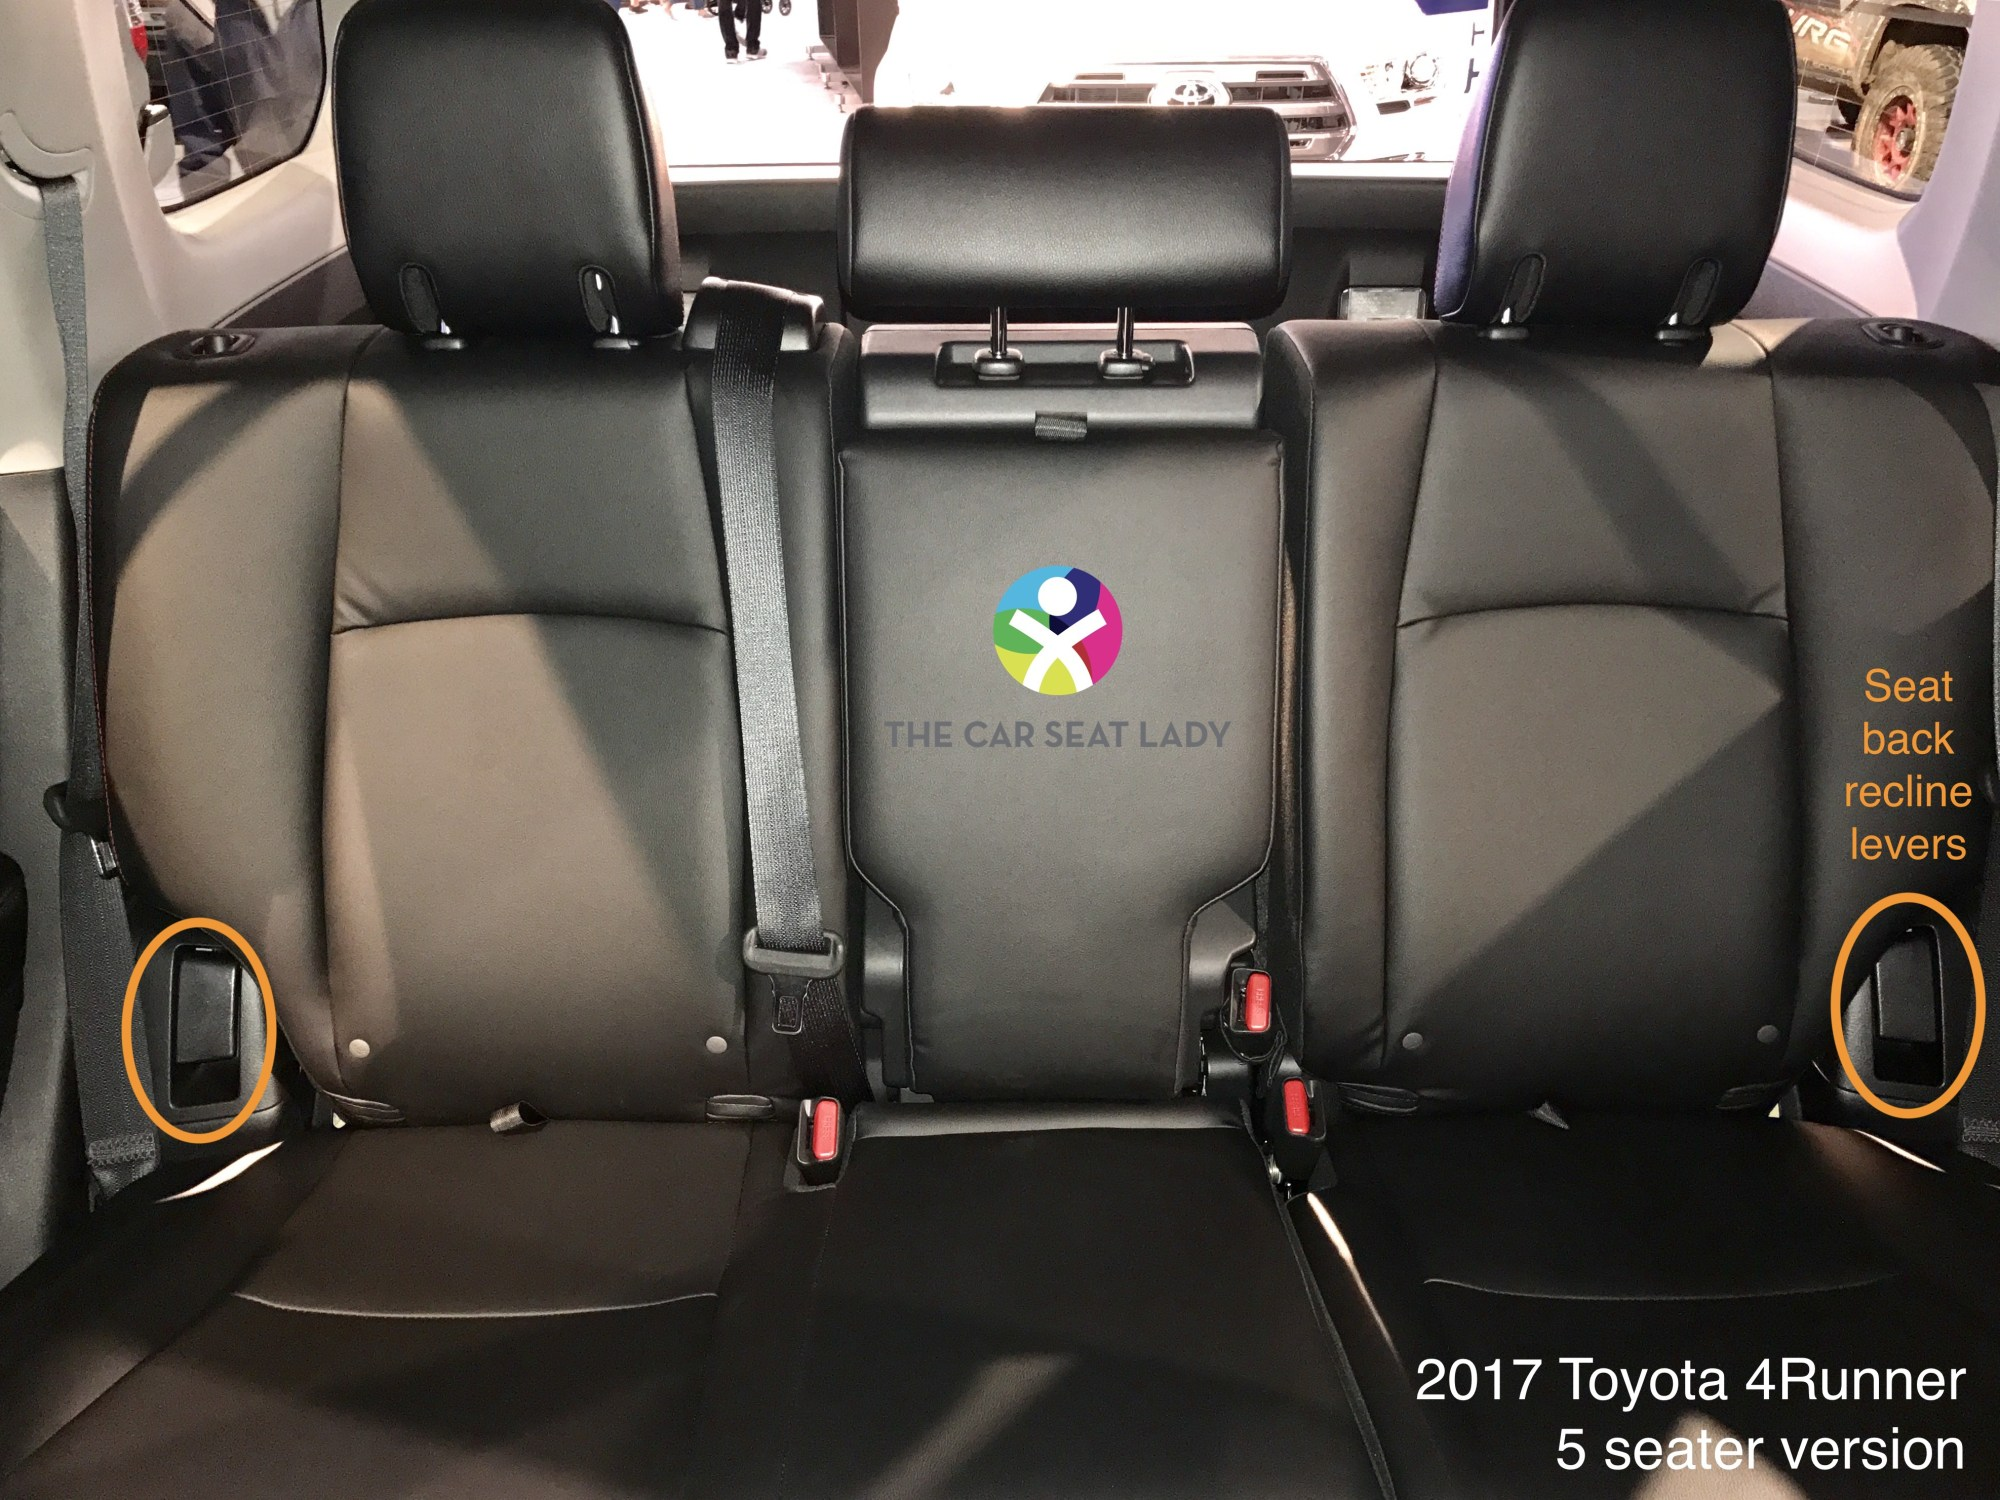 hight resolution of  securely installed and may put the lap belt on the belly a dangerous place for a lap belt for an older child or adult riding in this center seat